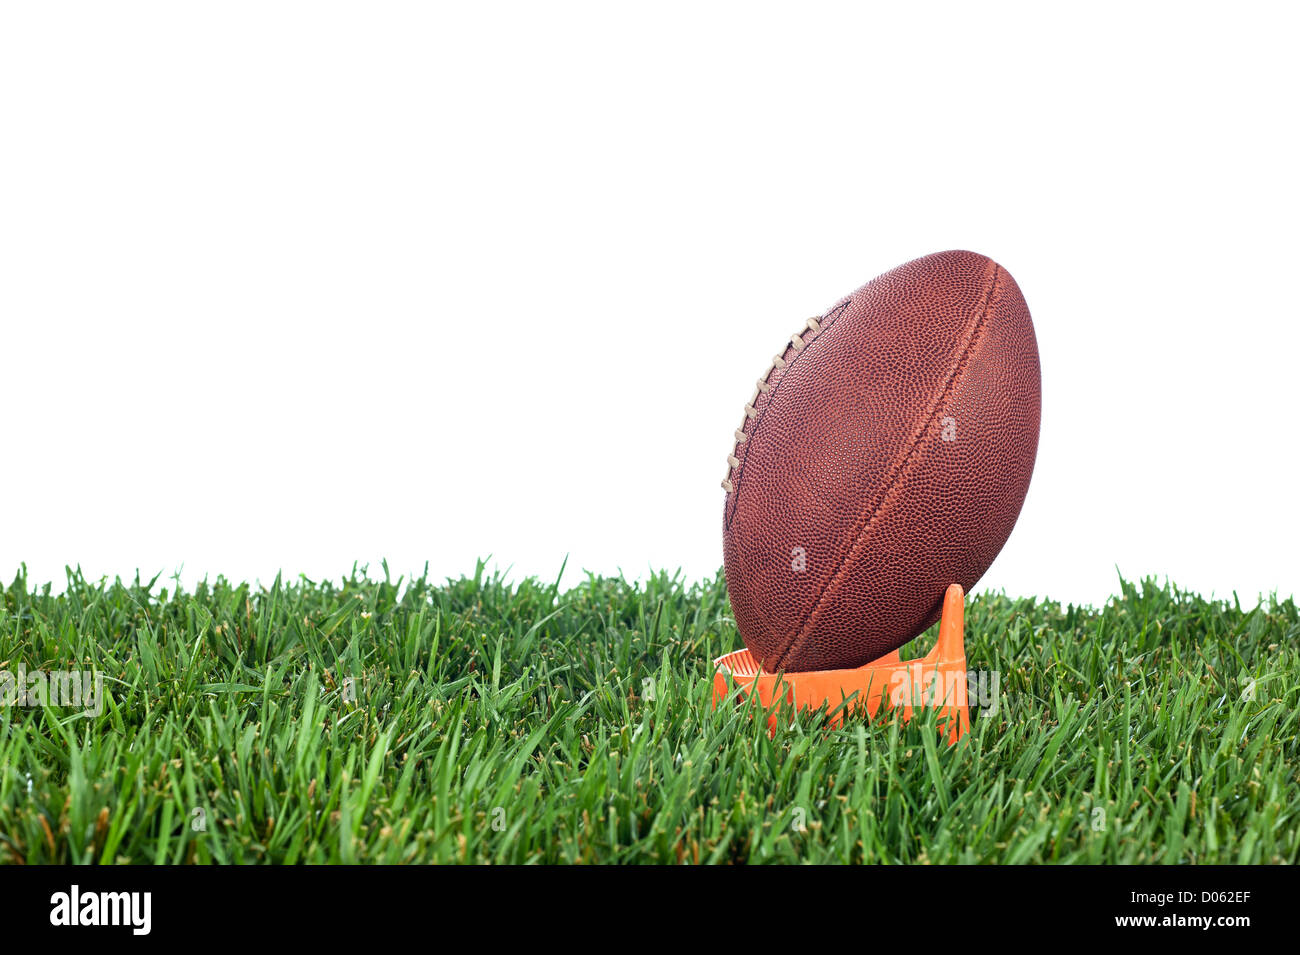 Football tee on green grass waiting for a kick off. White background for placement of copy. - Stock Image